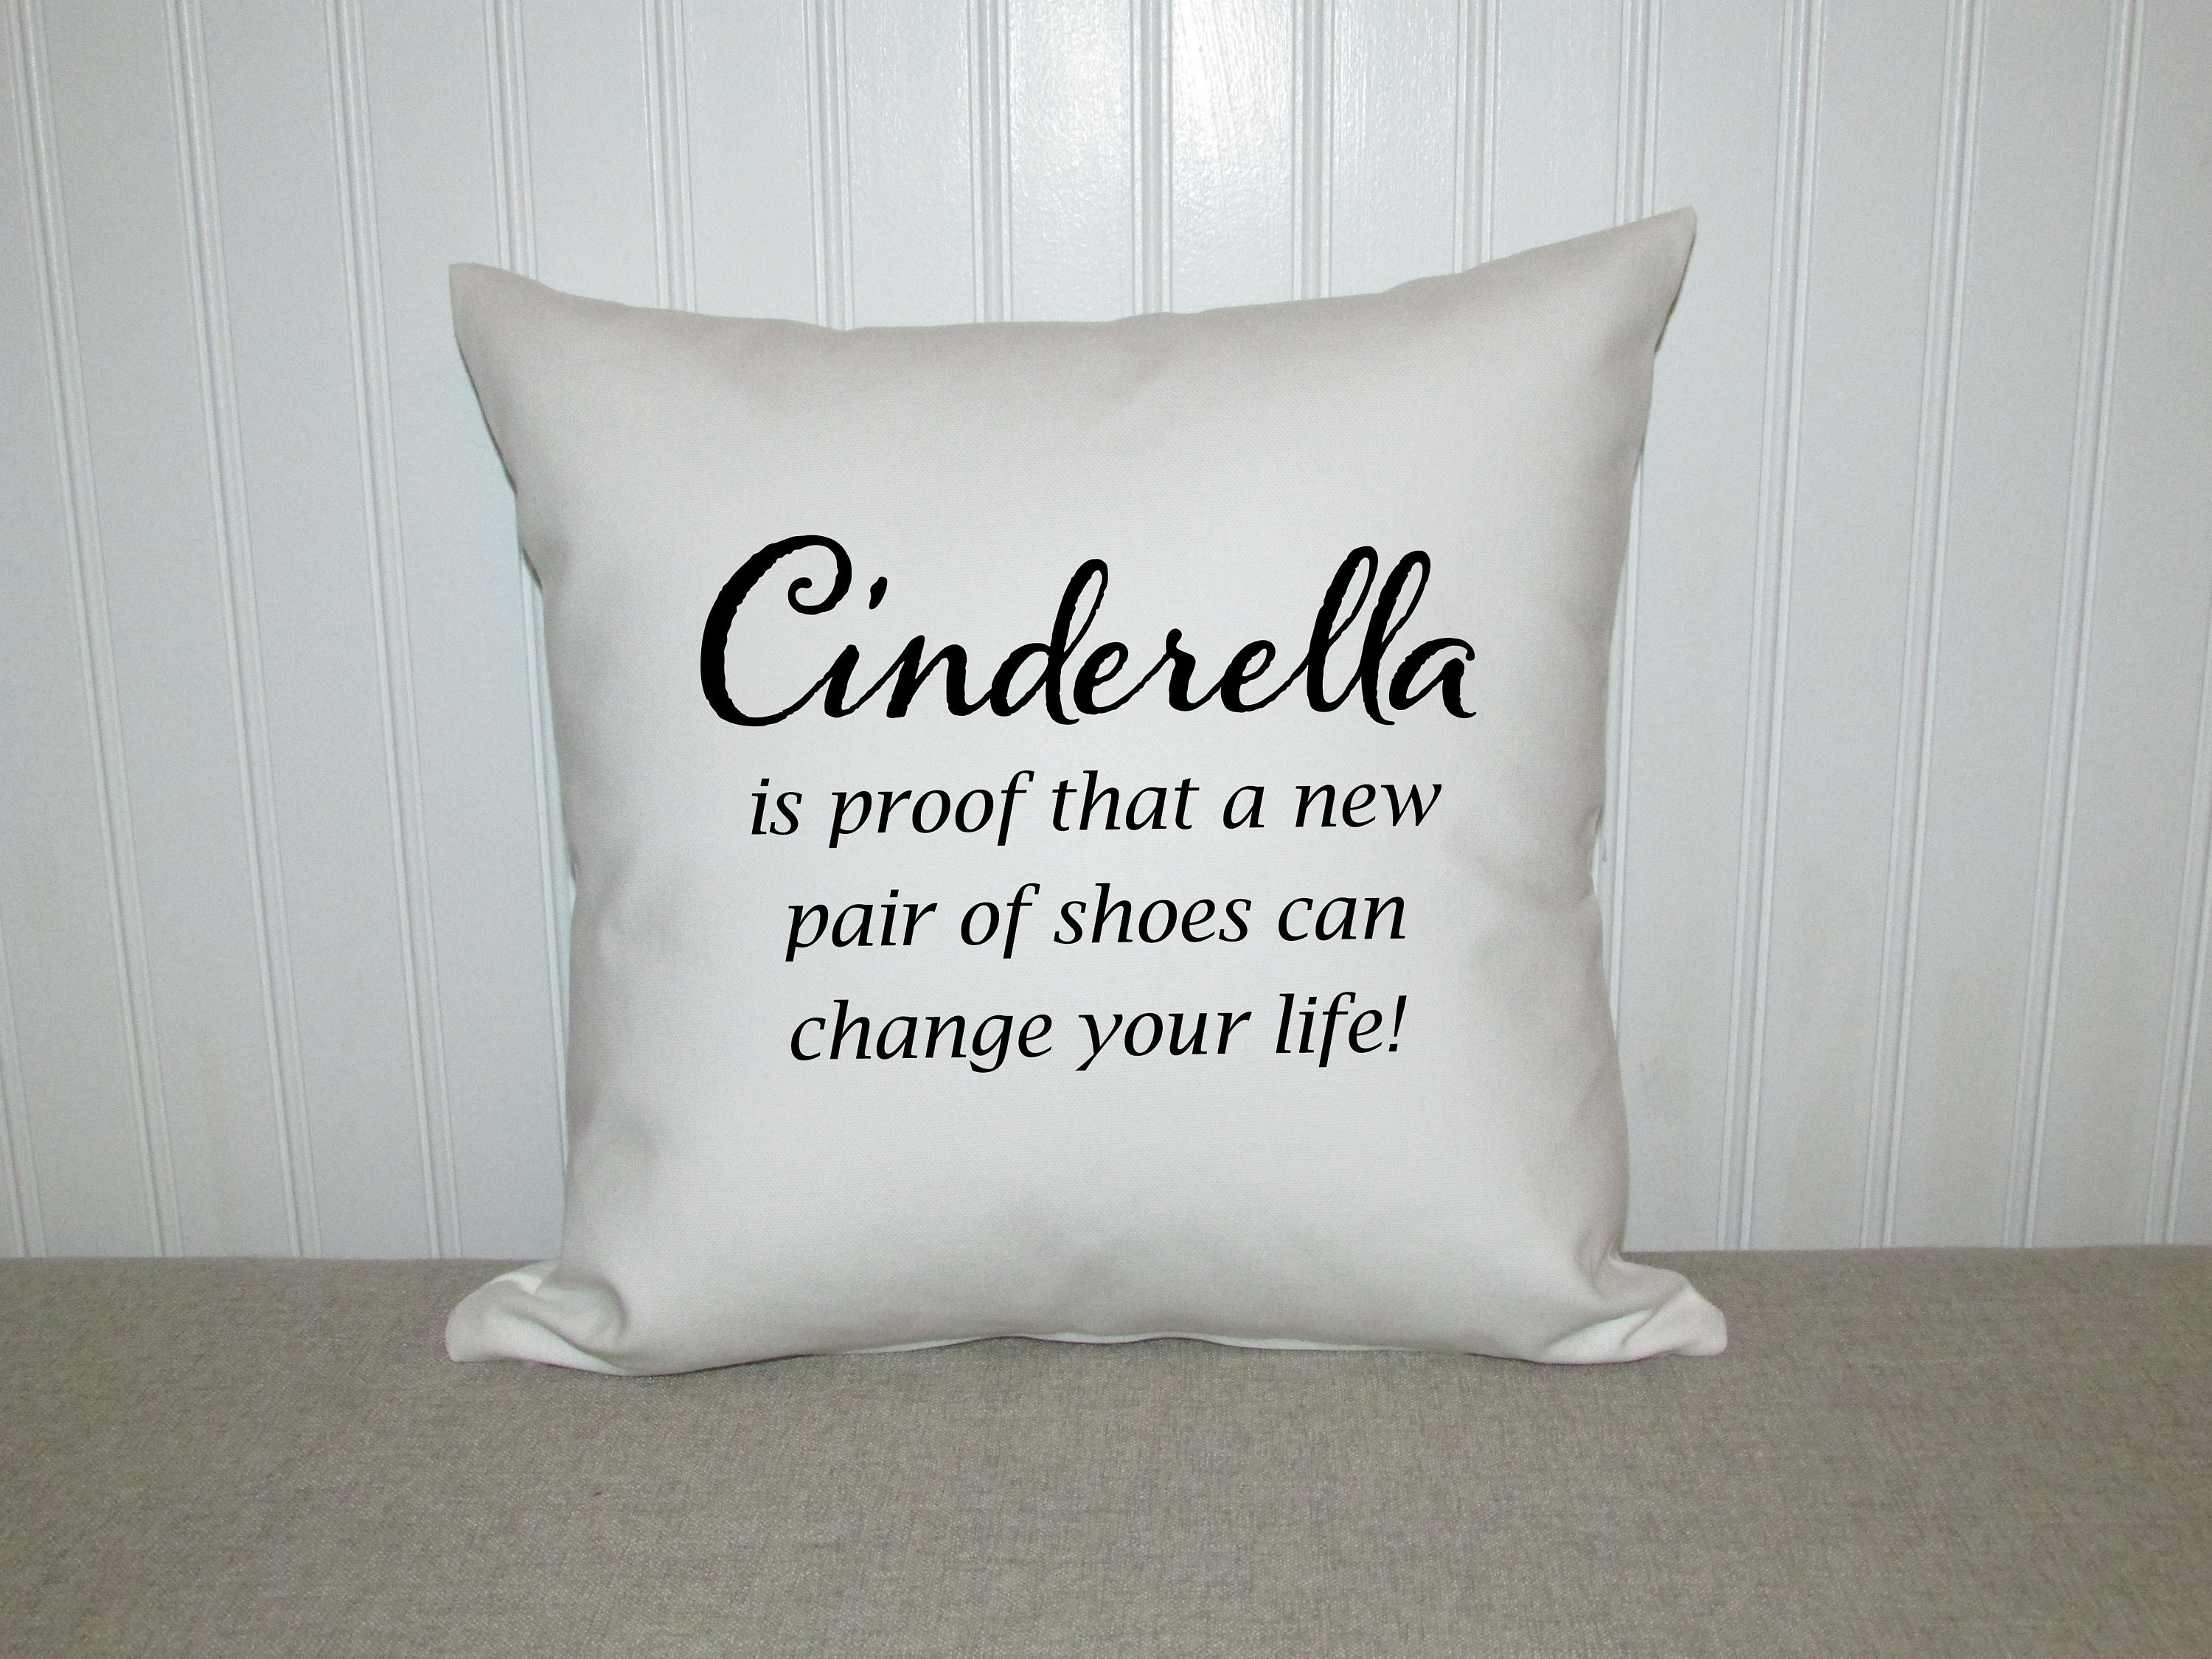 decorative pillows throw pillow cover birthday gift quote pillow cover girlfriend gift Gift for your best friend,girlfriend gift